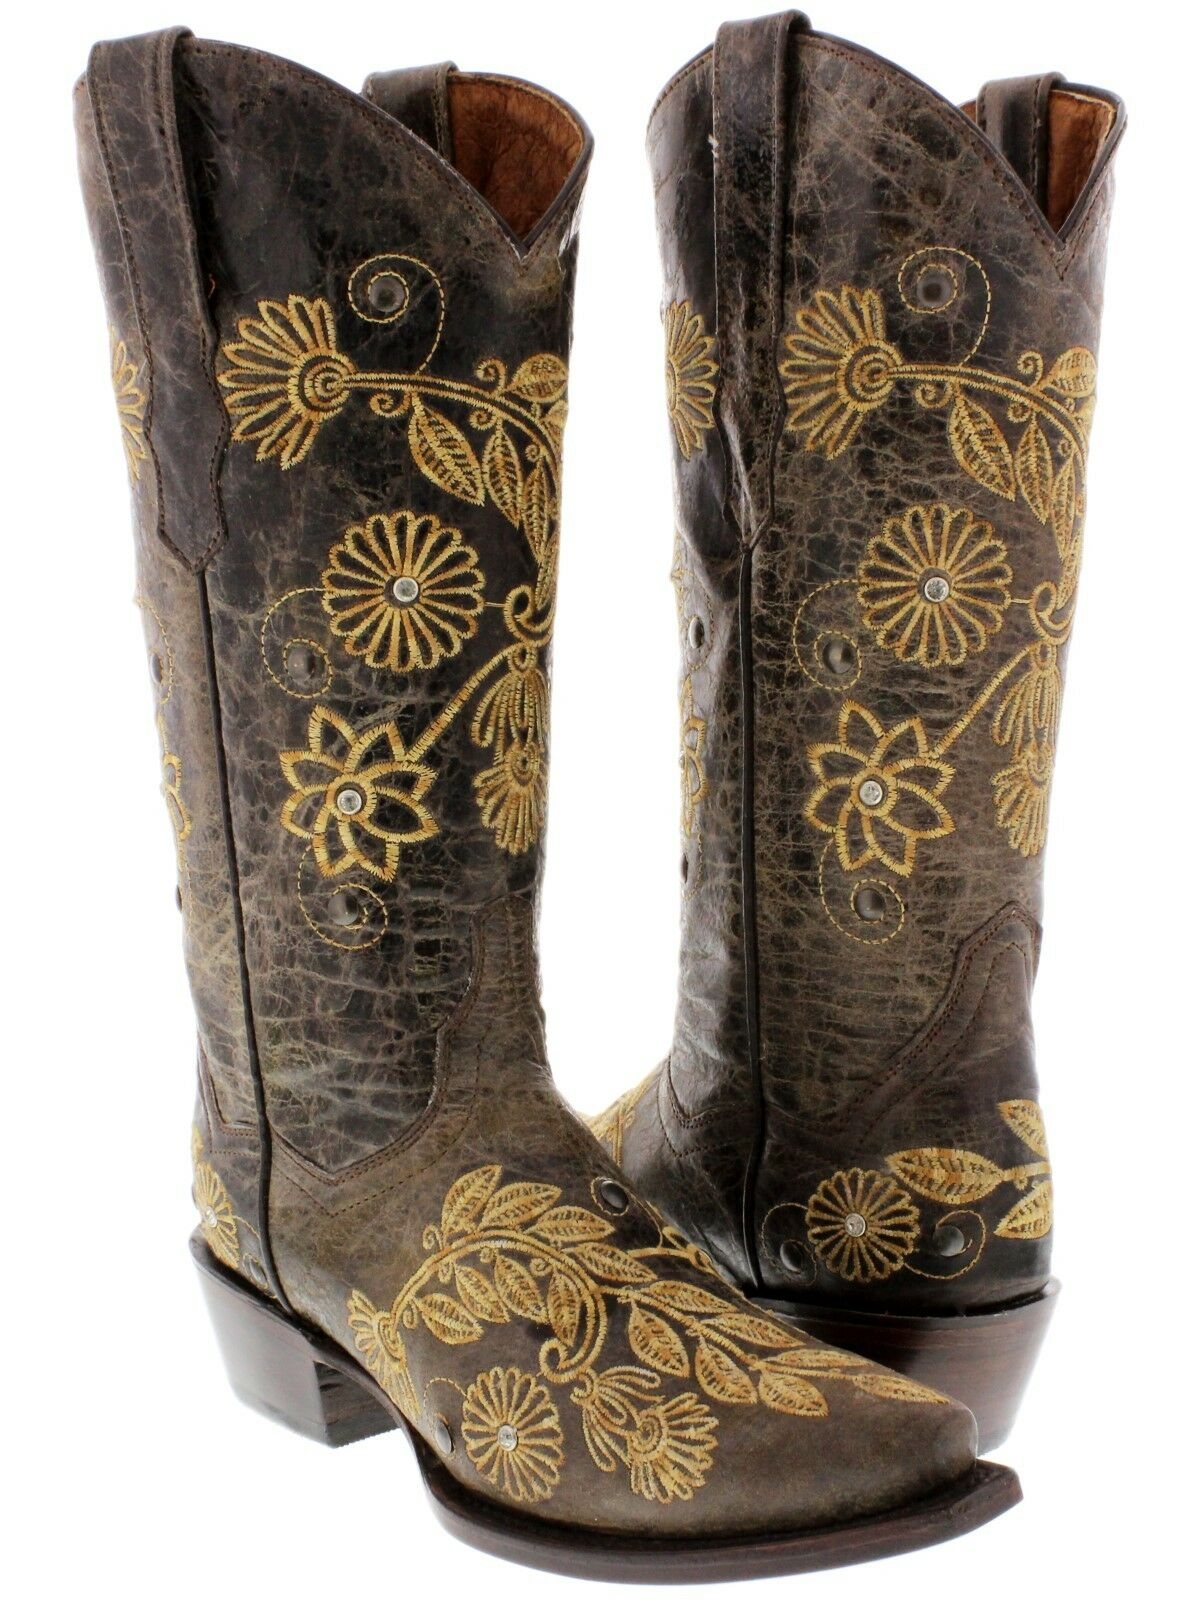 Donna Brown Western Pelle Cowboy Cowgirl Stivali Rodeo Riding Embroidered Snip